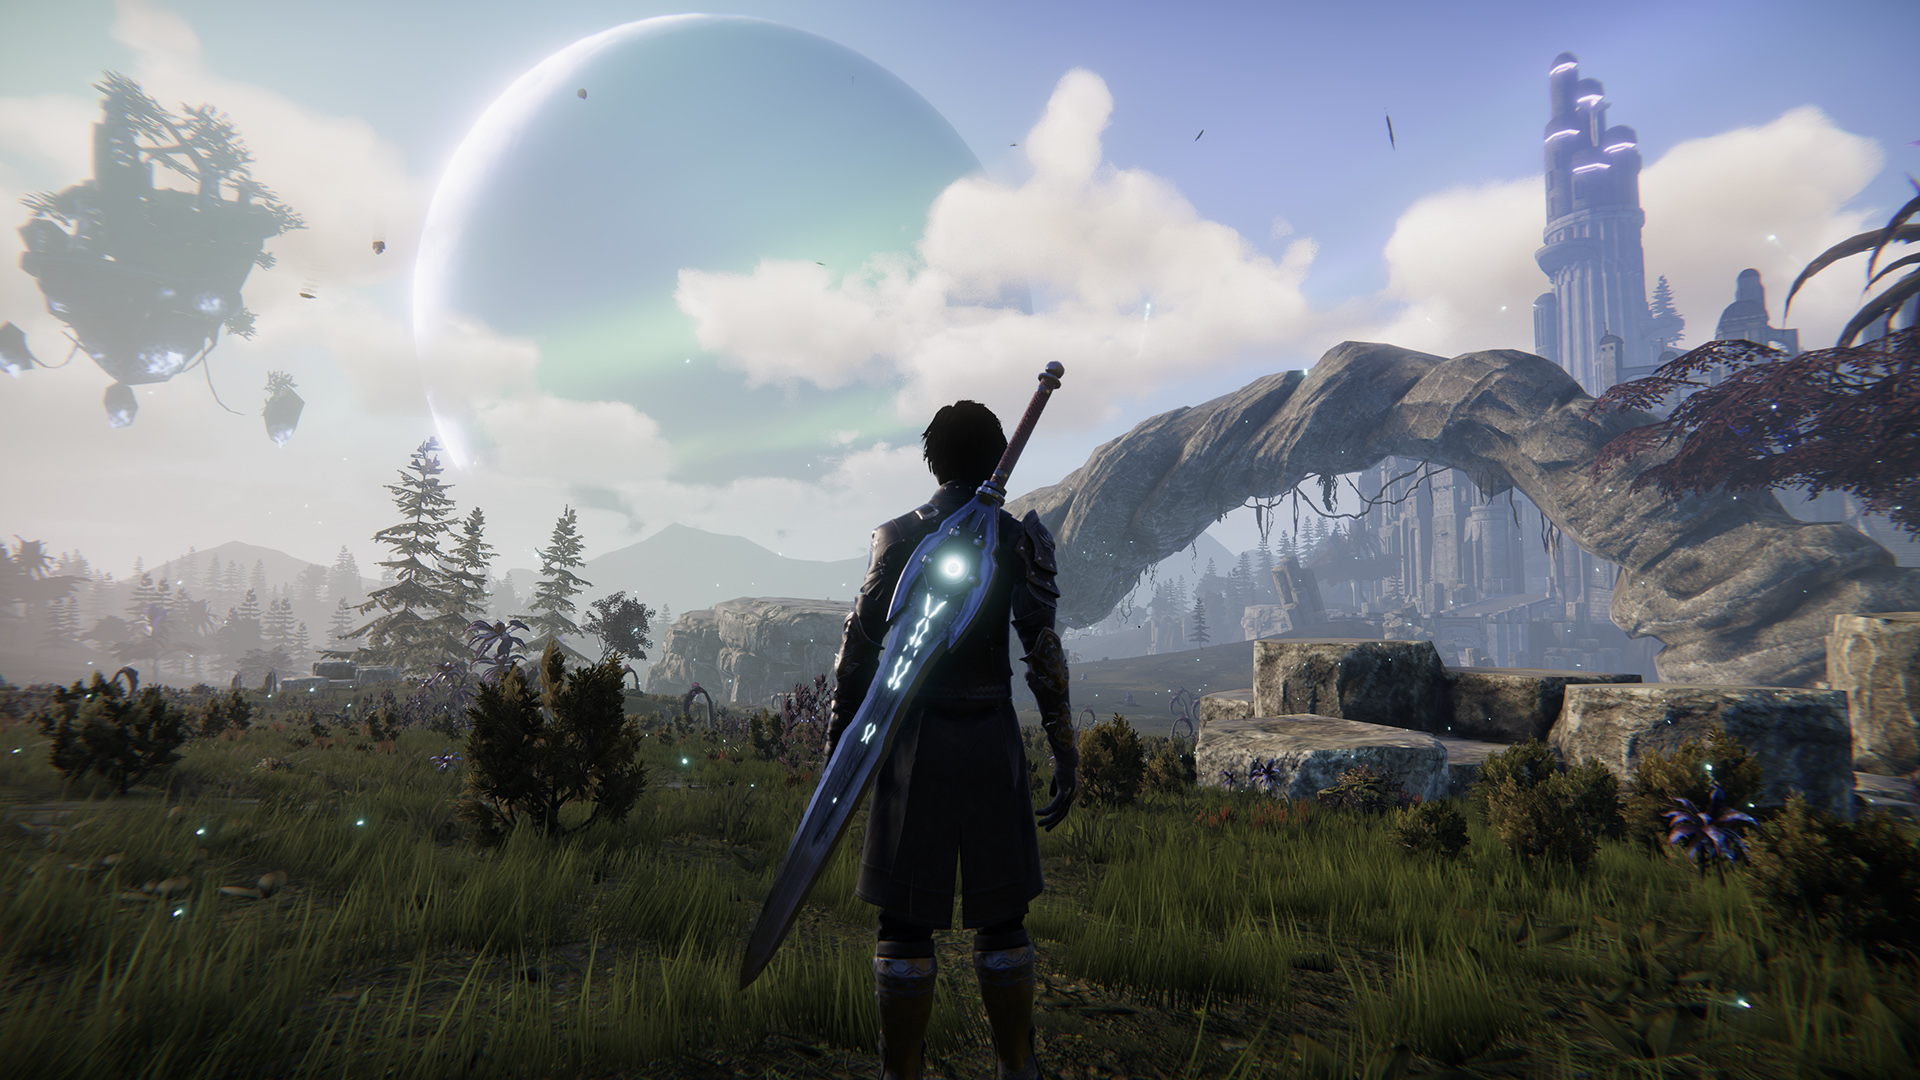 JRPG Edge Of Eternity gets release date